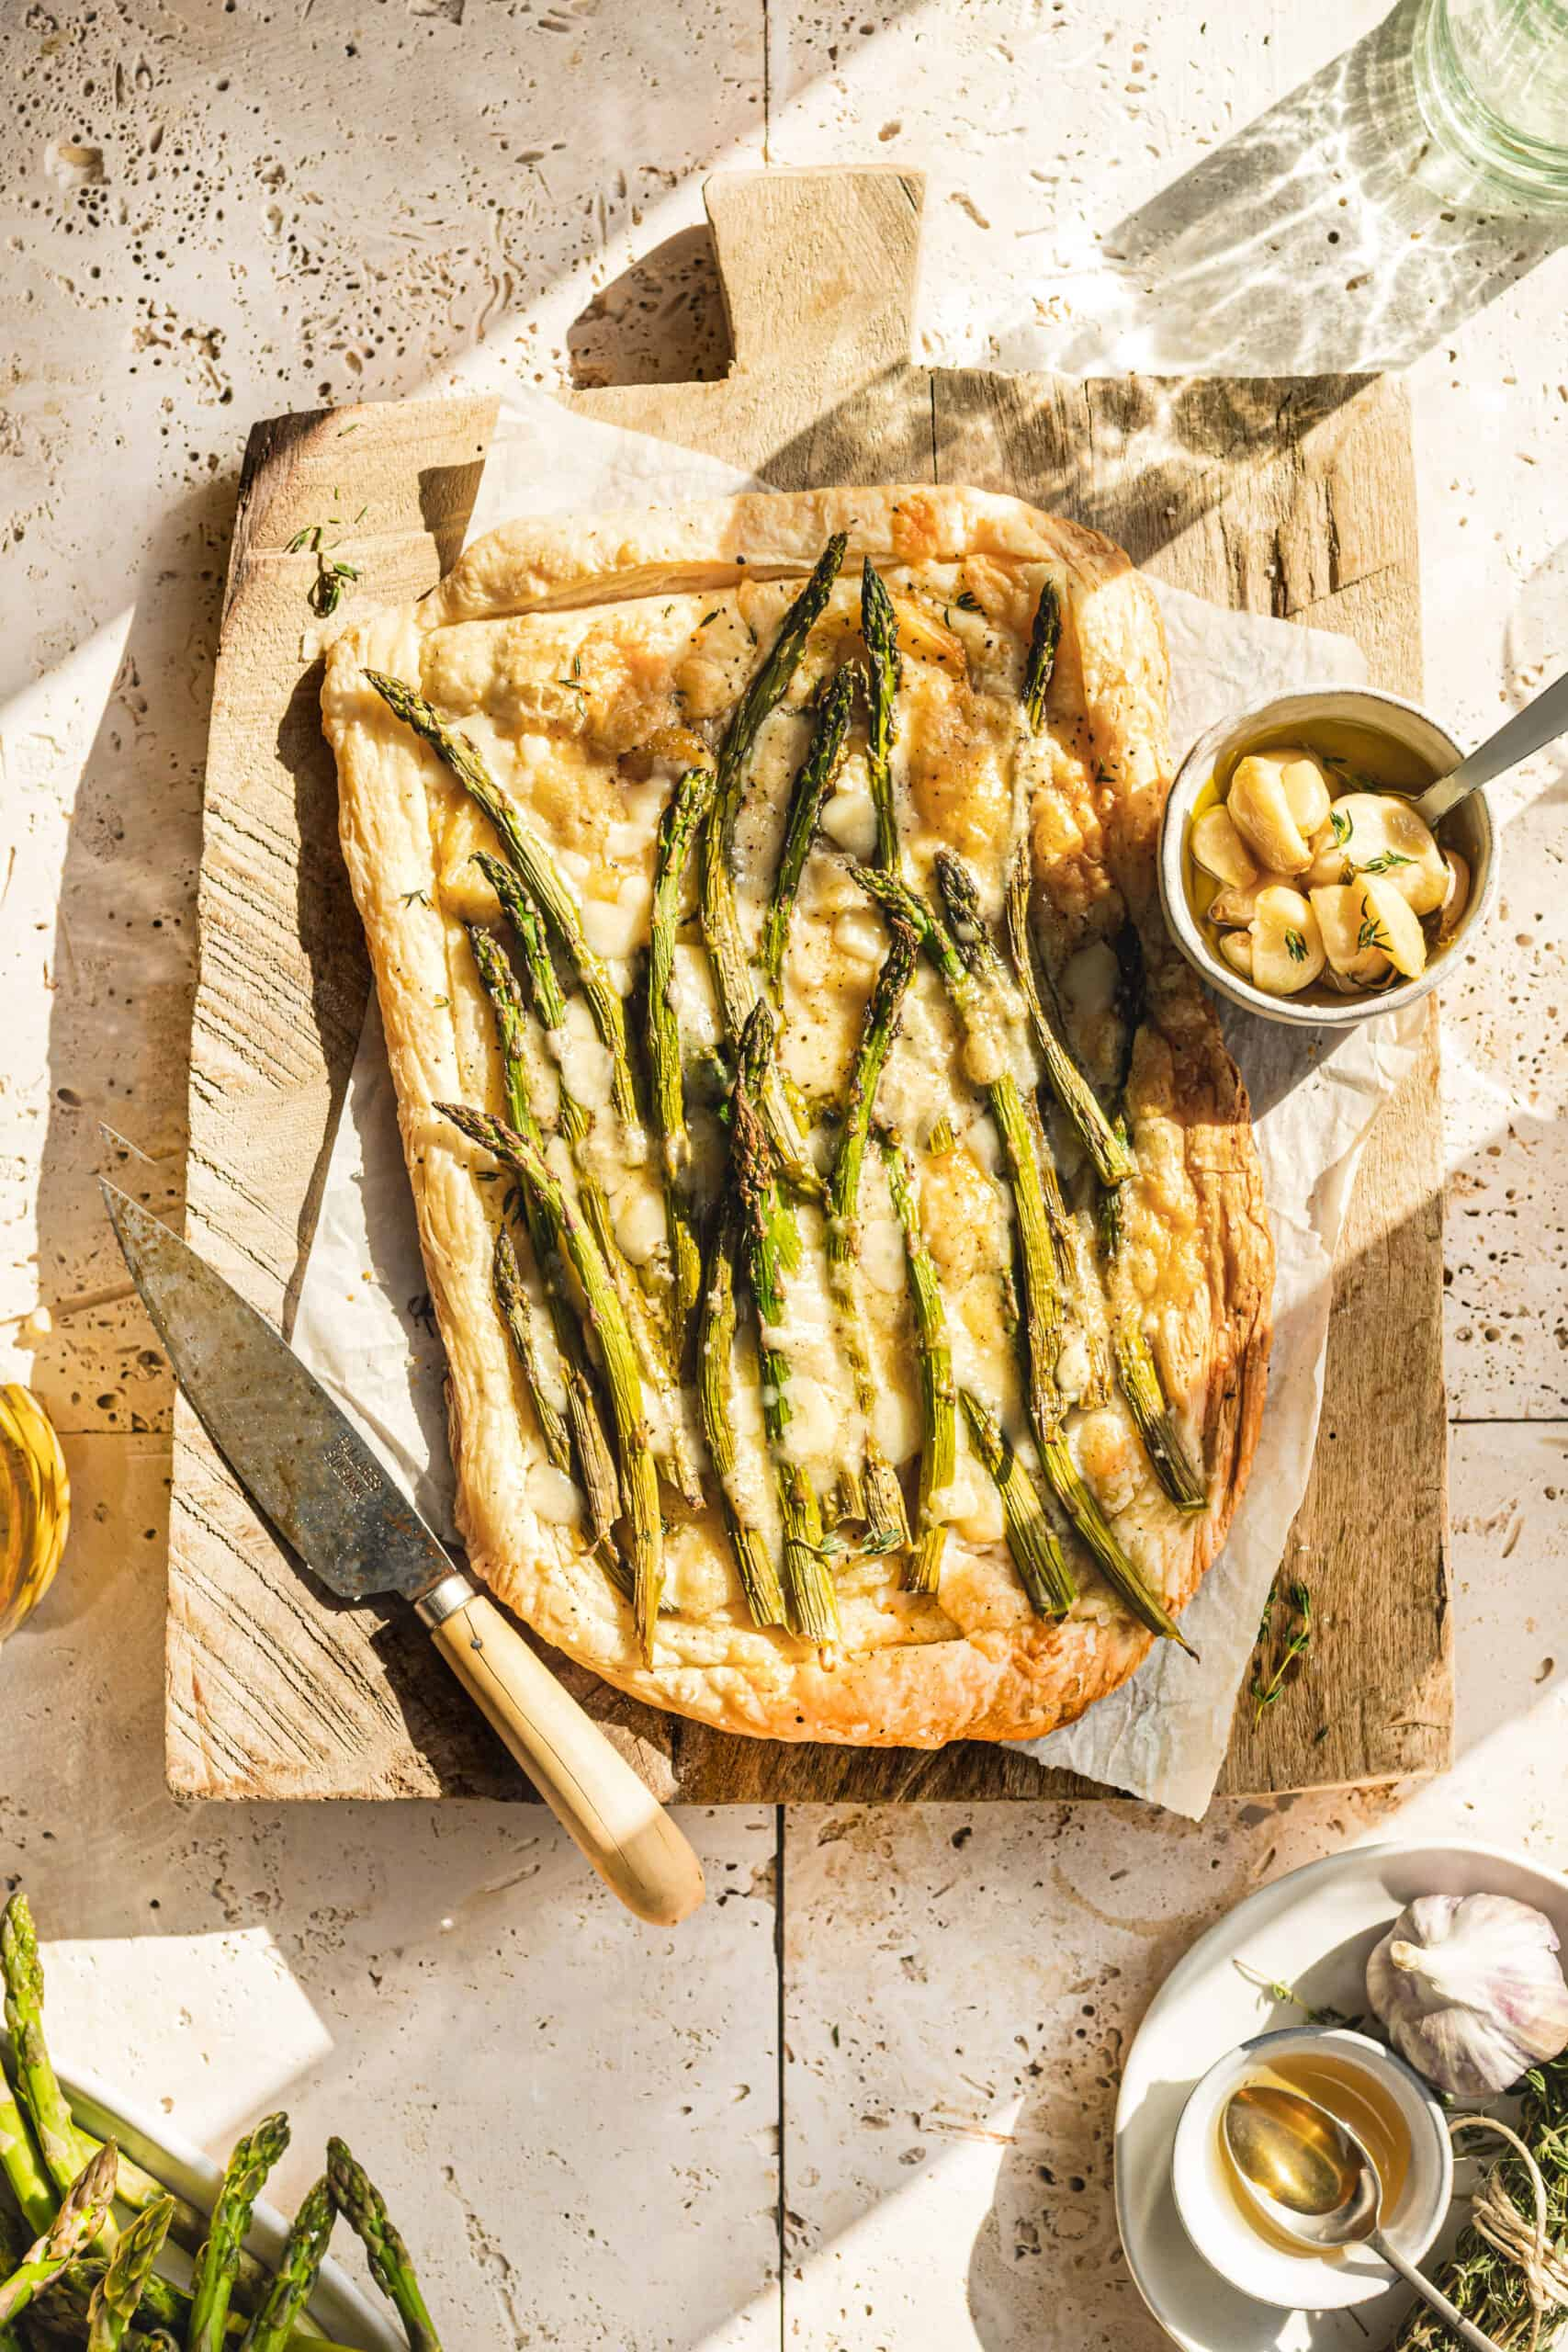 Asparagus and Cheese Tart on cutting board with sun shining through window.